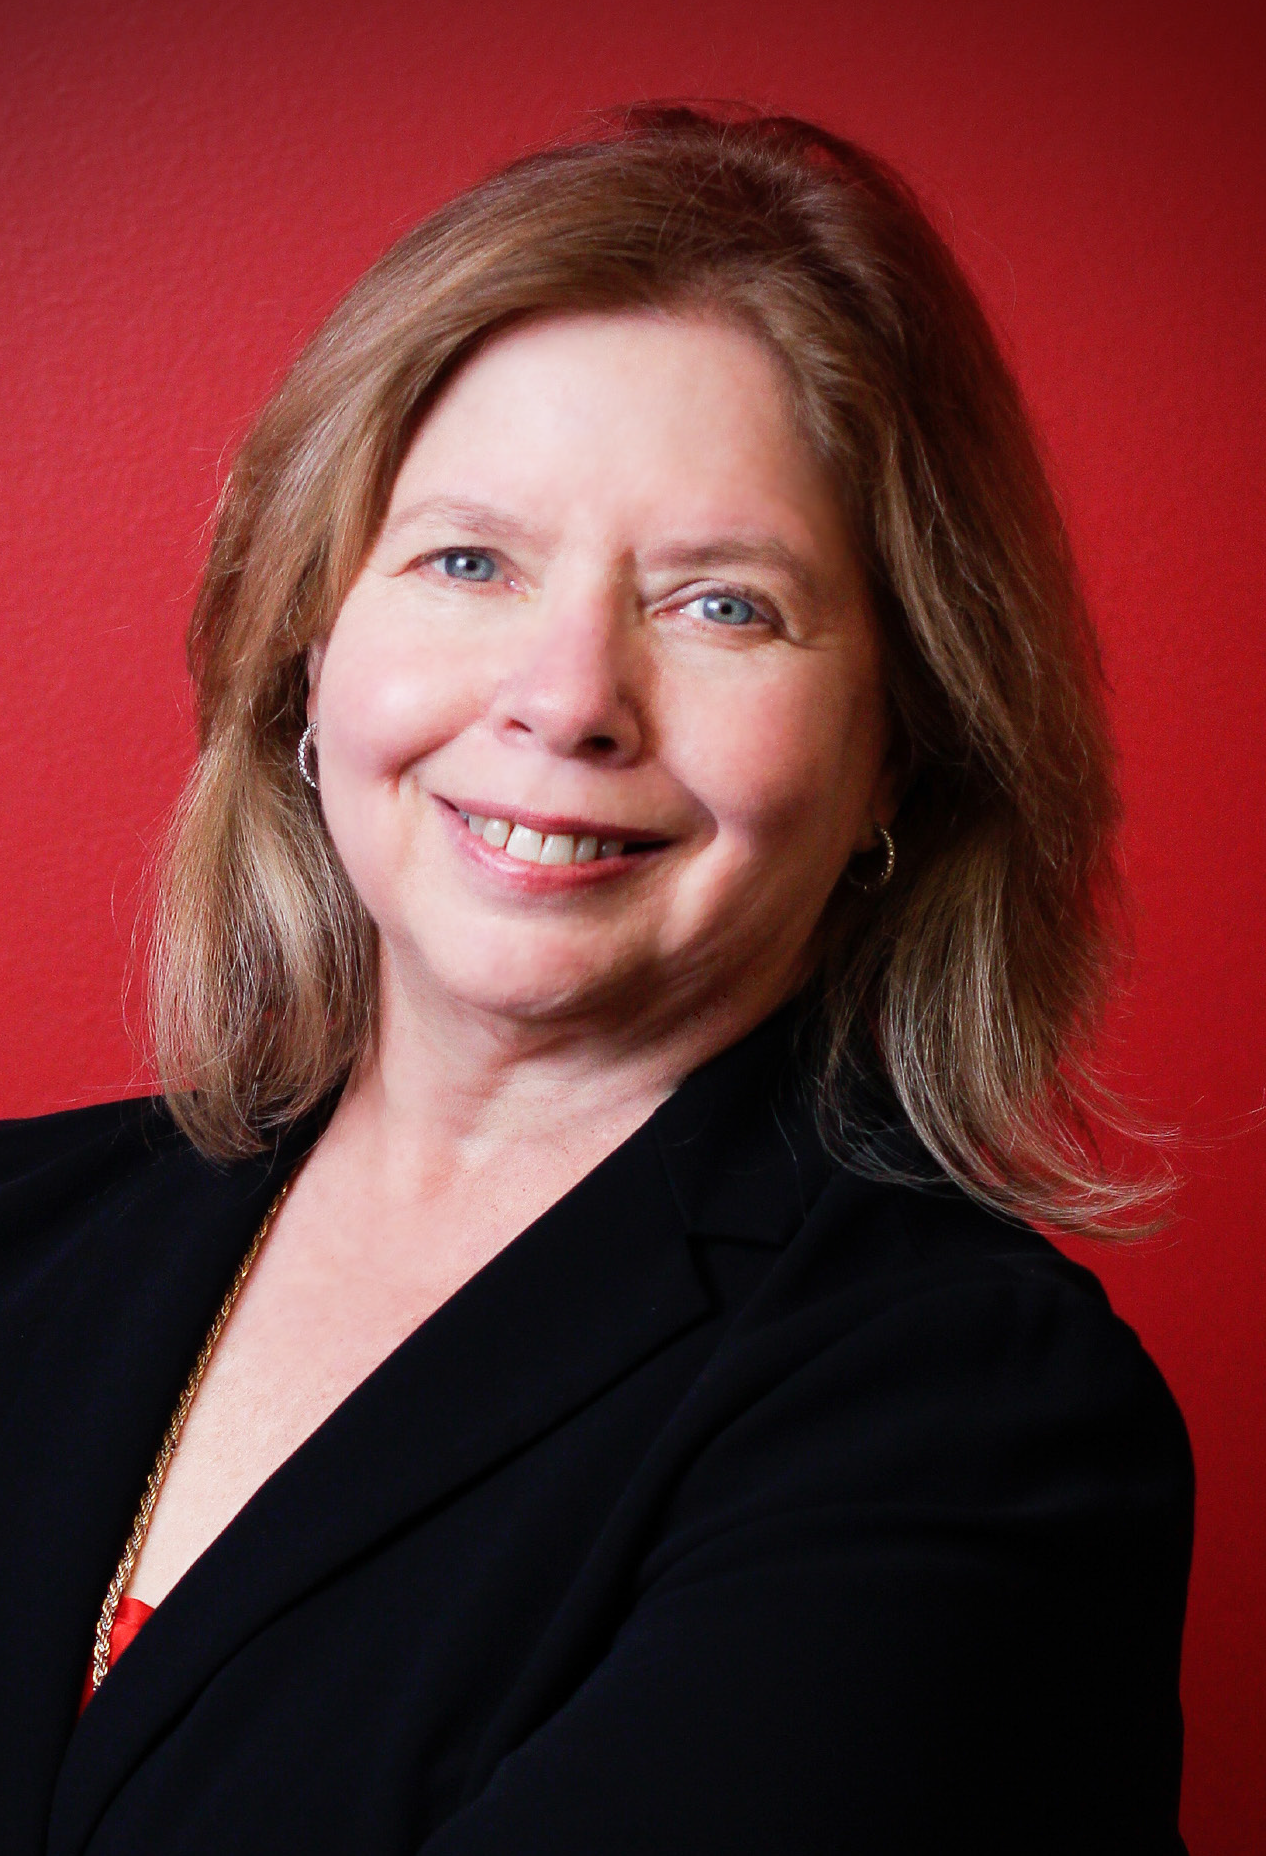 Portrait of Dean Lisa German